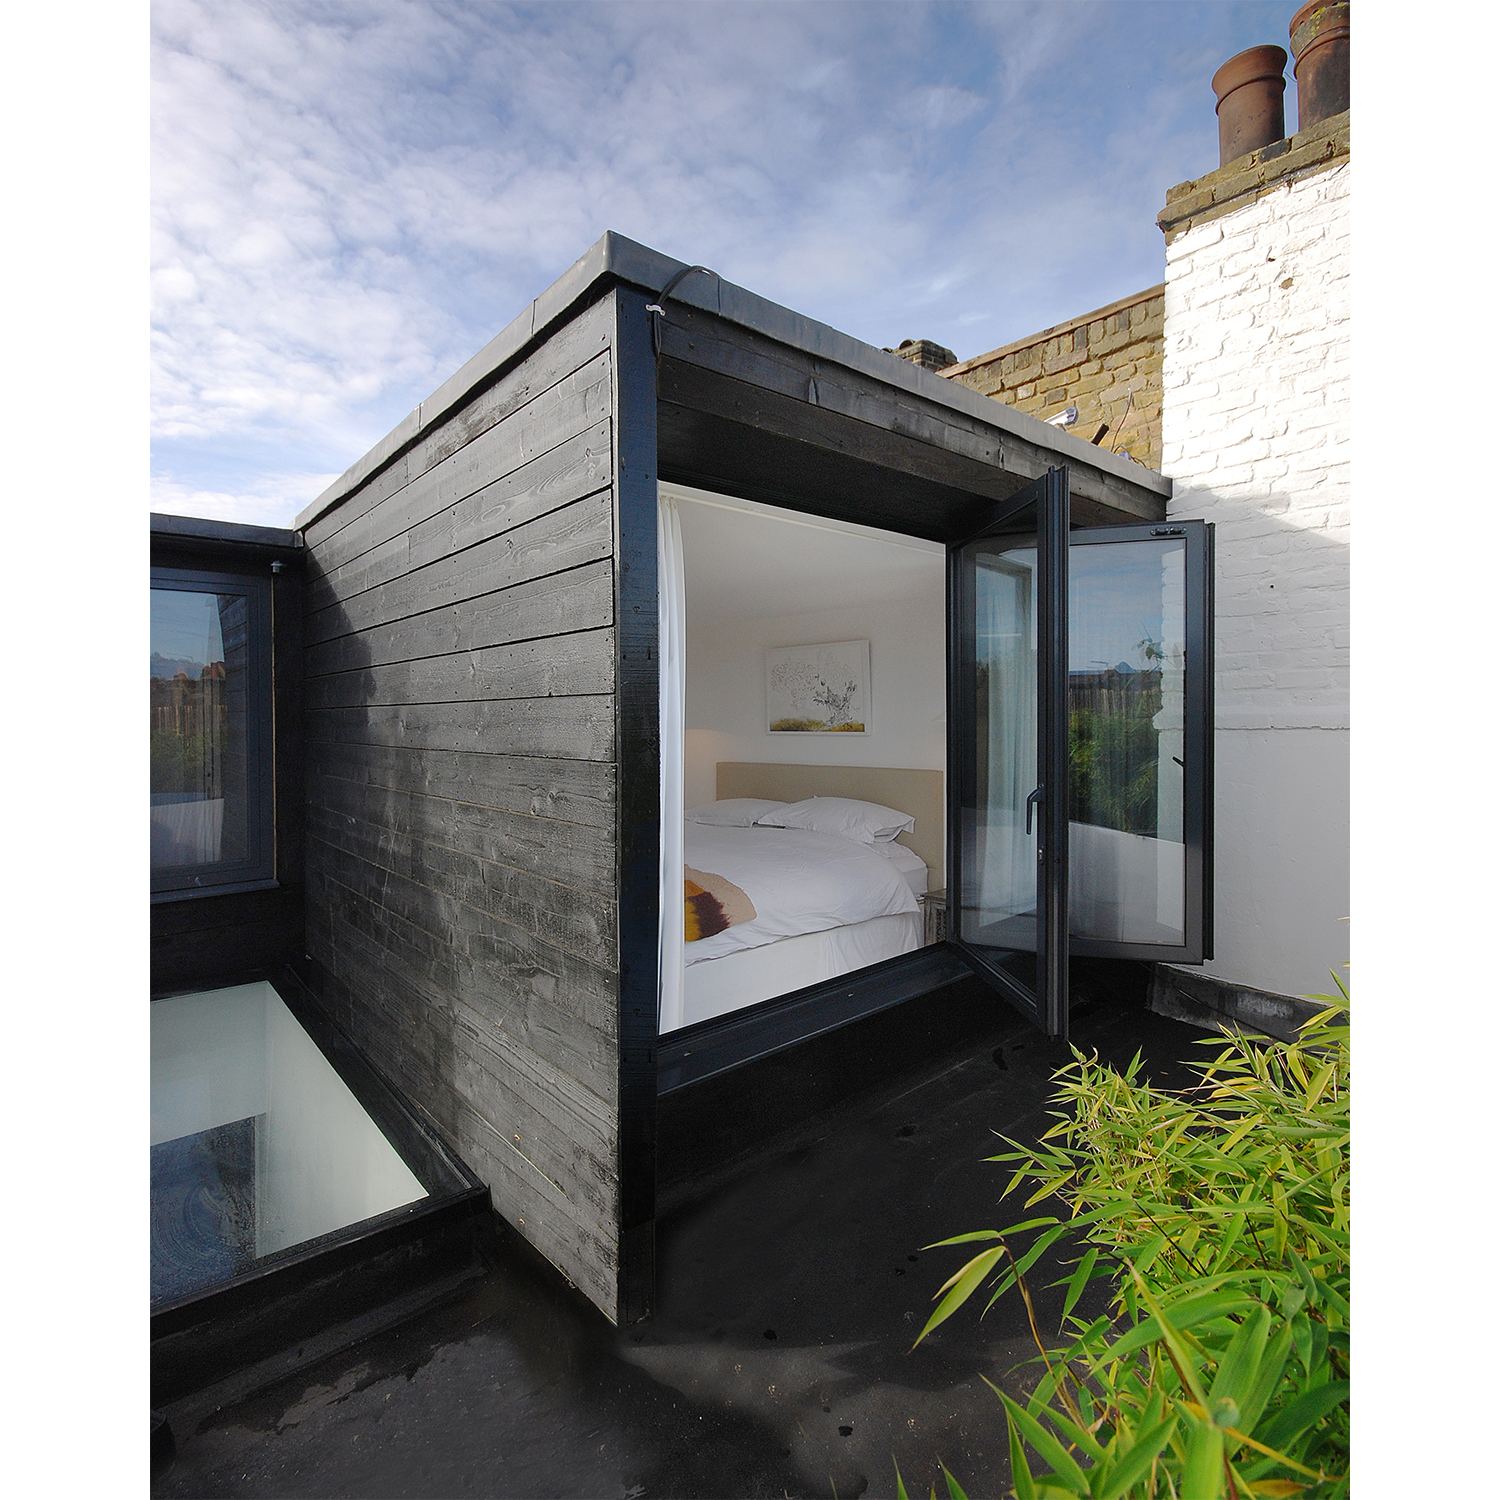 Latimer Road. Covered in Grand Designs Magazine as part of a feature on innovative loft extensions